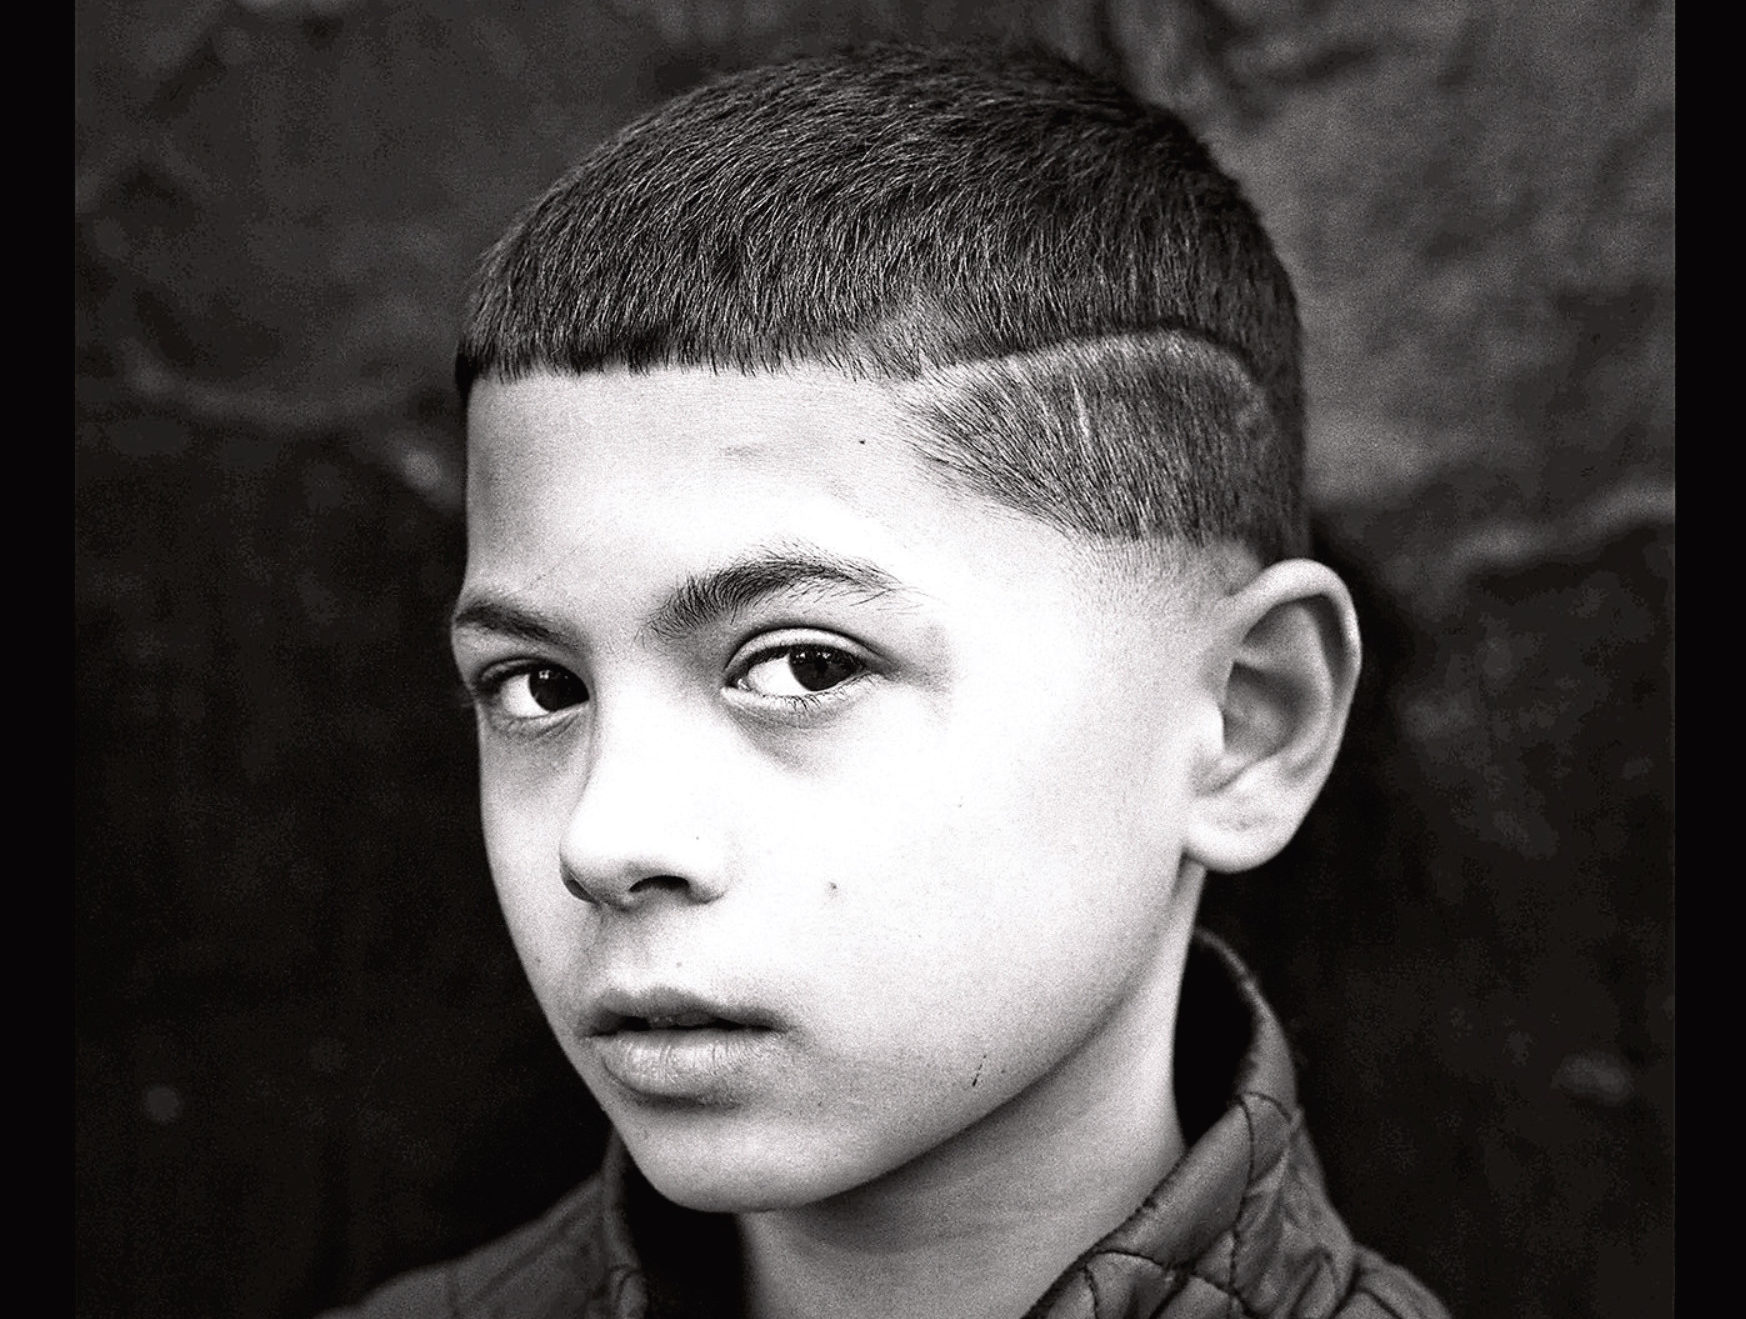 """Emil, part of the """"Govanhill street level"""" exhibition by photographer Simon Murphy"""